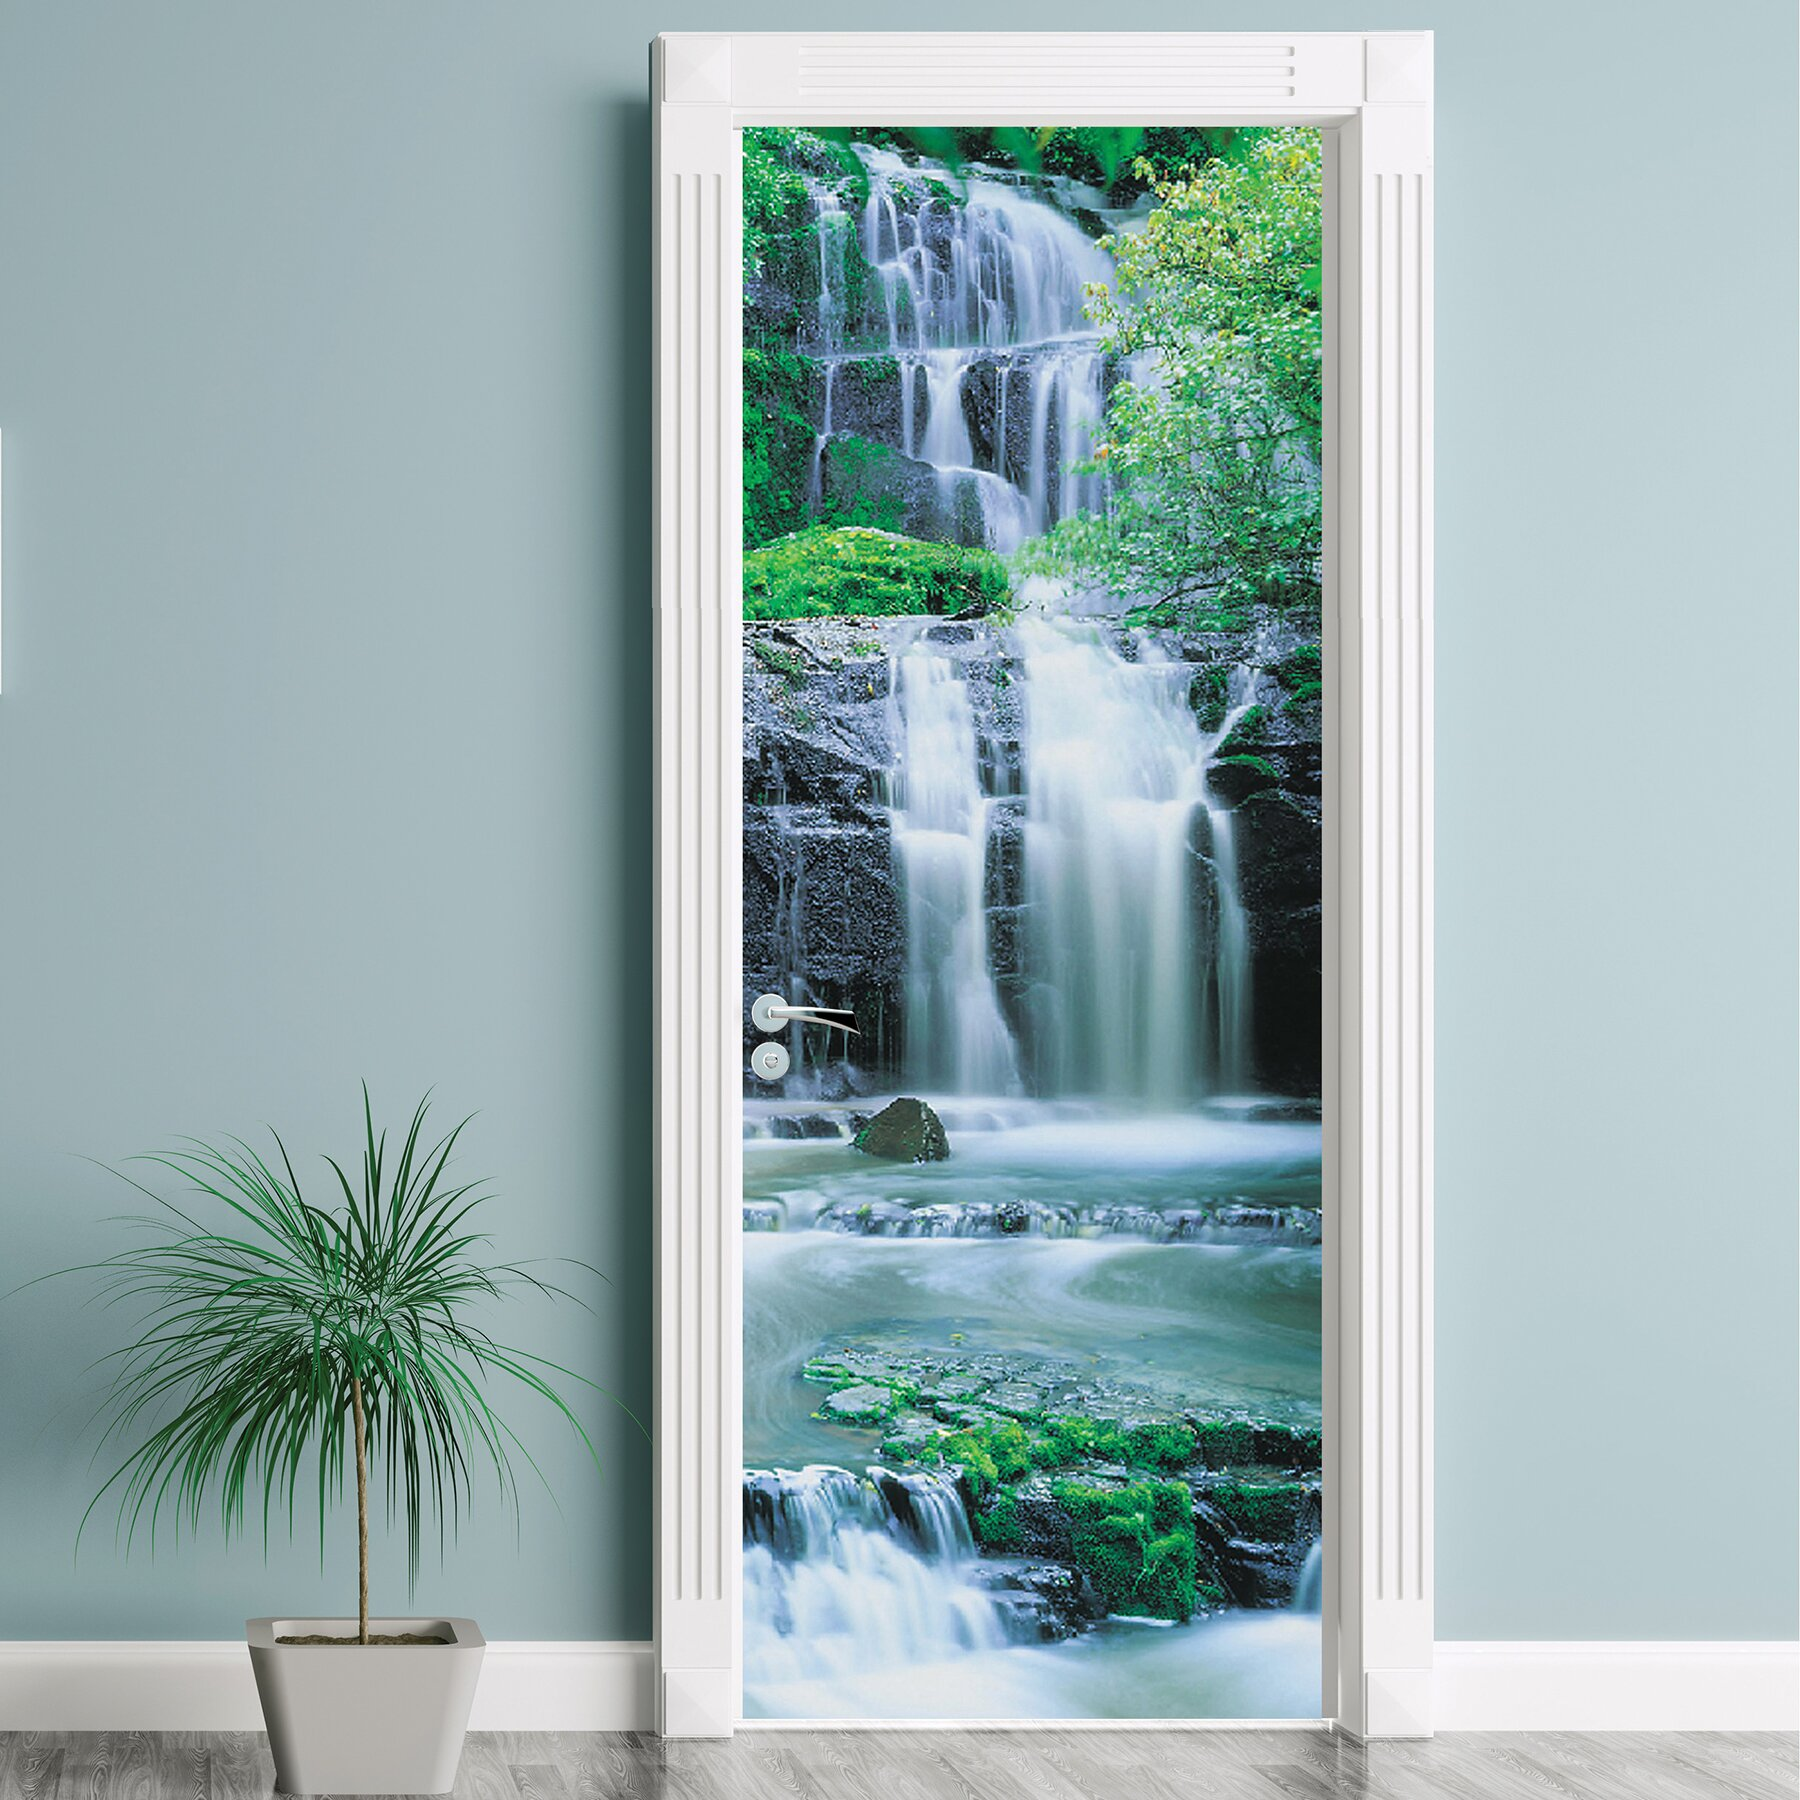 Komar pura kaunui falls wall mural wayfair for Brewster home fashions wall mural